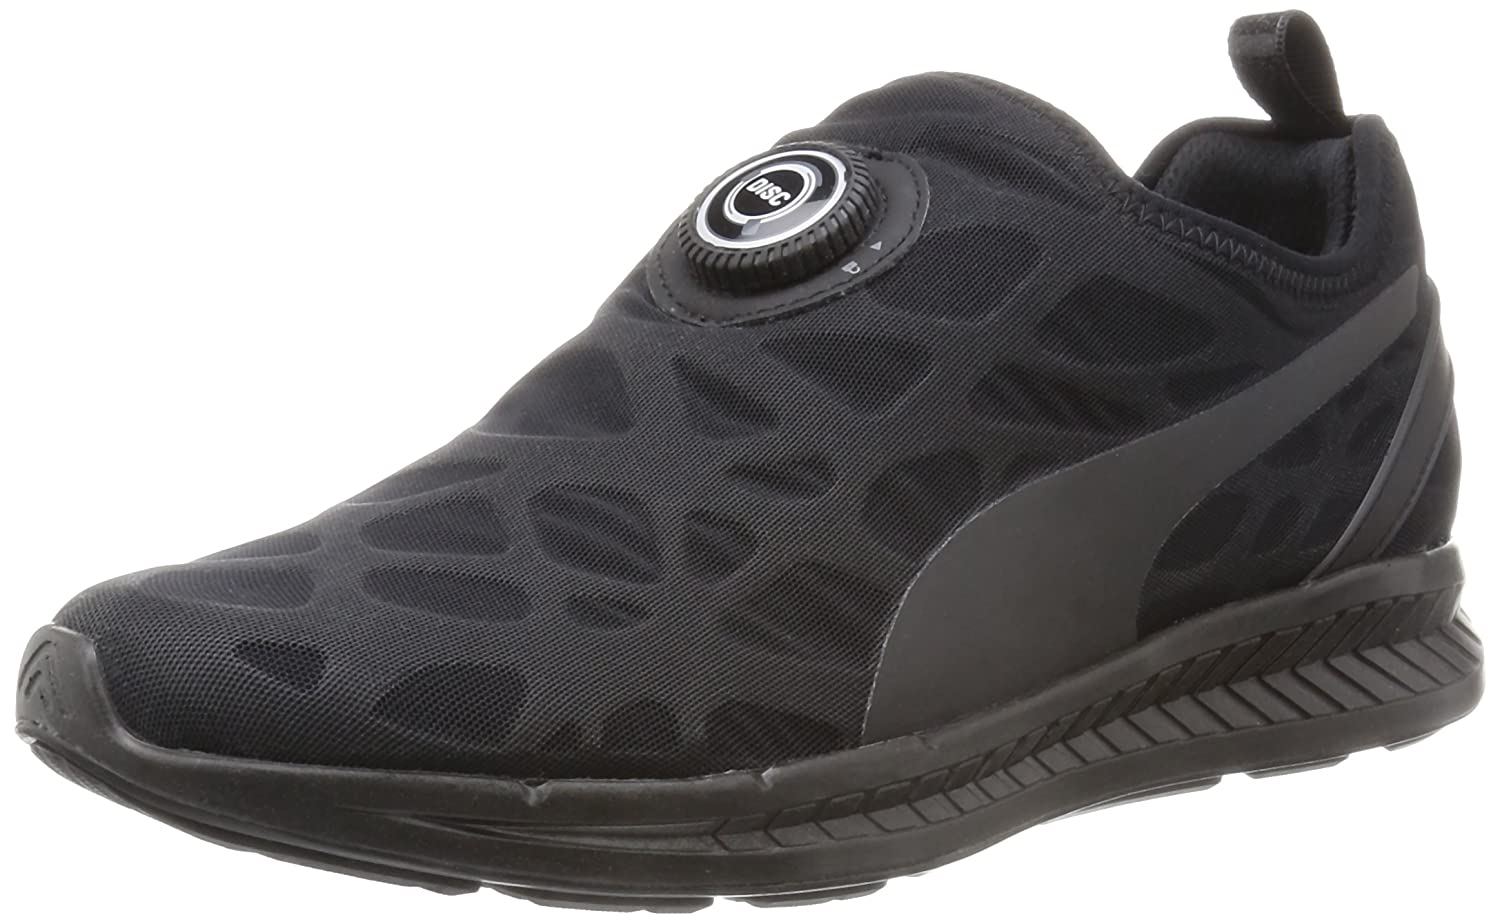 Puma Men s Disc Sleeve Ignite Str. Foam Black Safety Shoes - 9 UK India (43  EU)  Buy Online at Low Prices in India - Amazon.in 94e154528